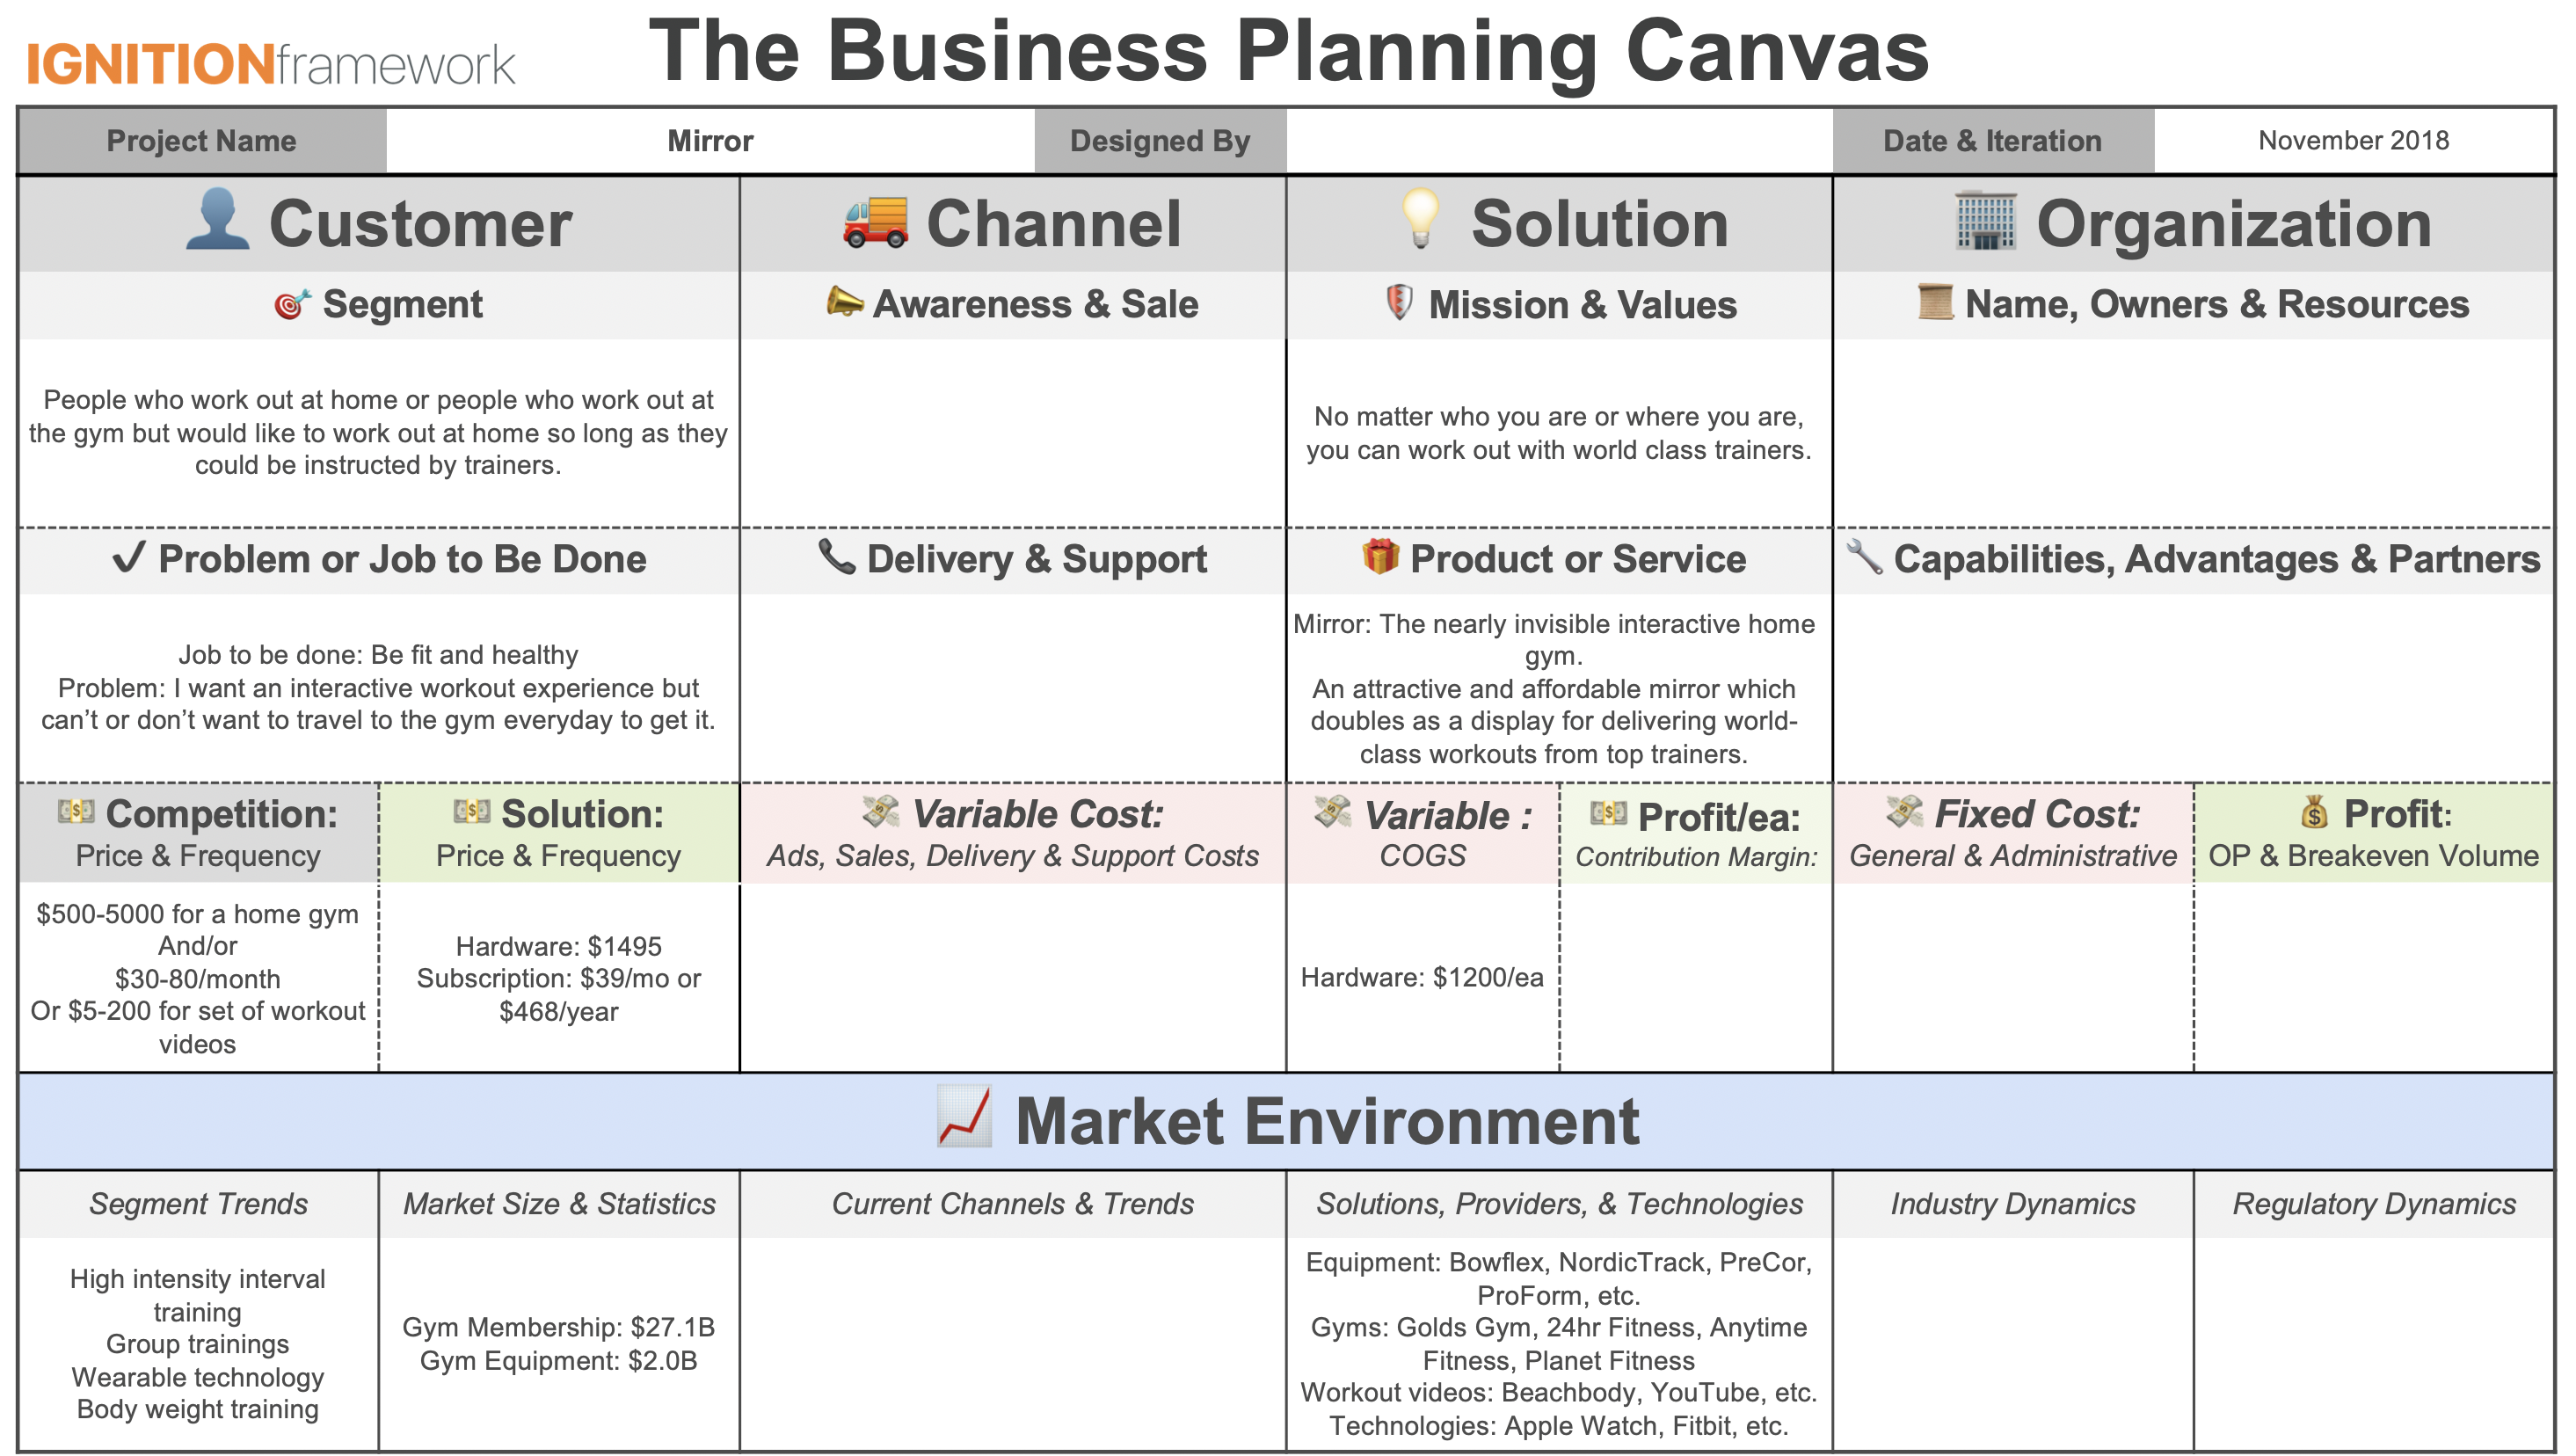 Business Planning Canvas w Customer and Solution Filled Out